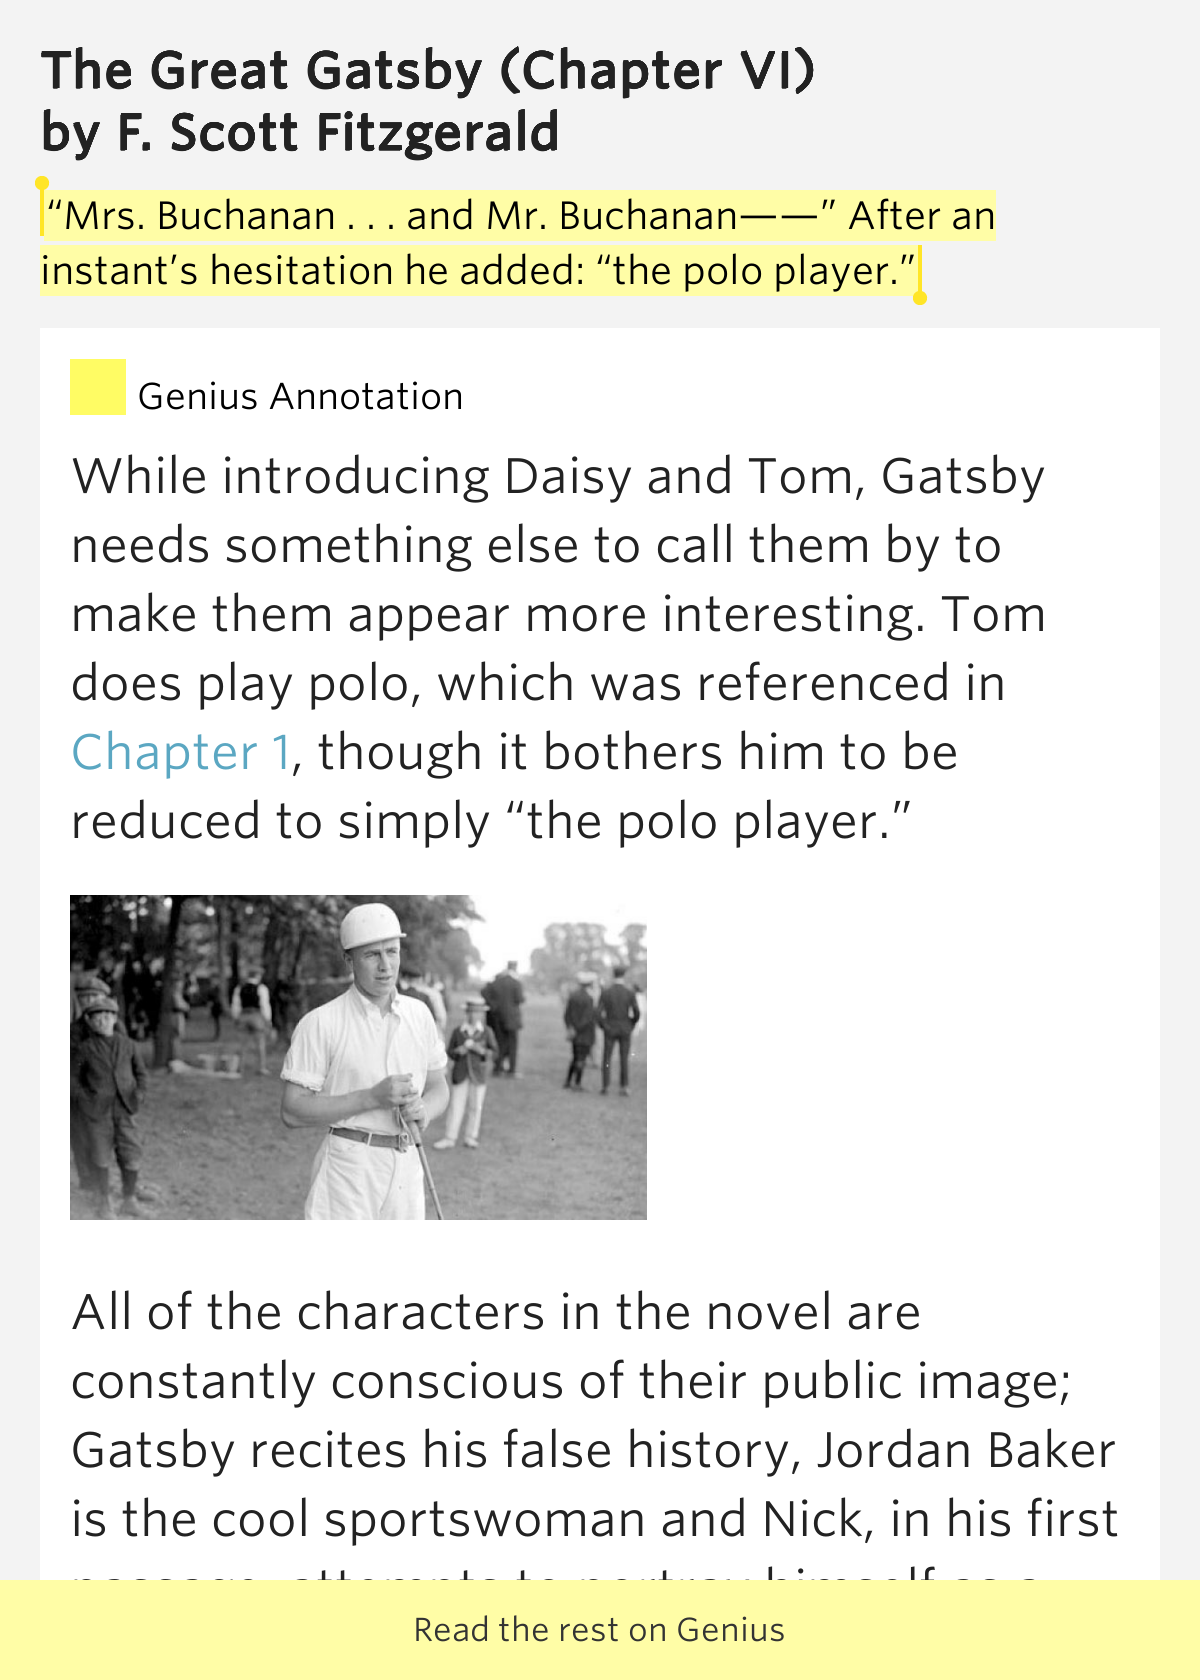 "an analysis of tom buchanan a character from the great gatsby by f scott fitzgerald F scott fitzgerald proclaimed his distaste for jews with his clichéd portrait   great gatsby,' "" he wrote, ""is easily its most obnoxious character  since the  gangster's name remains wolfsheim and tom [buchanan]  analysis."